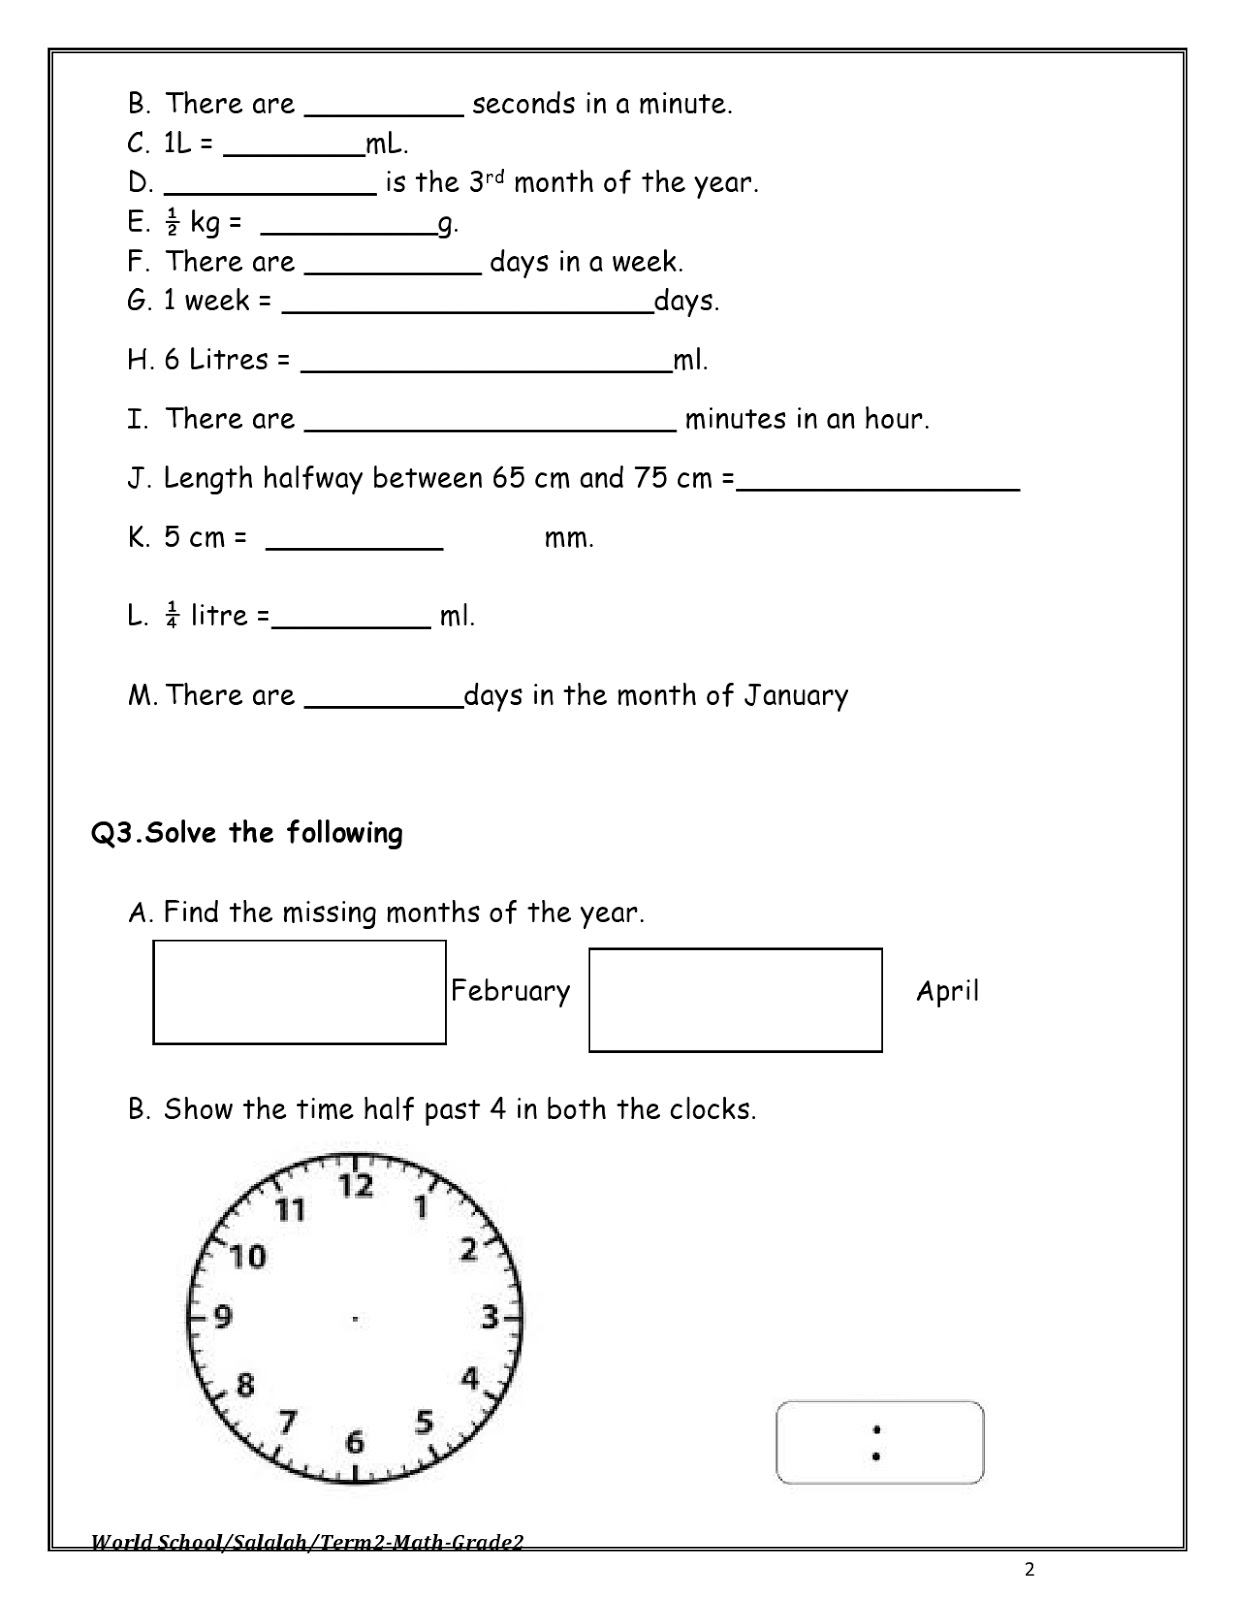 Birla World School Oman Revision Worksheets For Grade 2